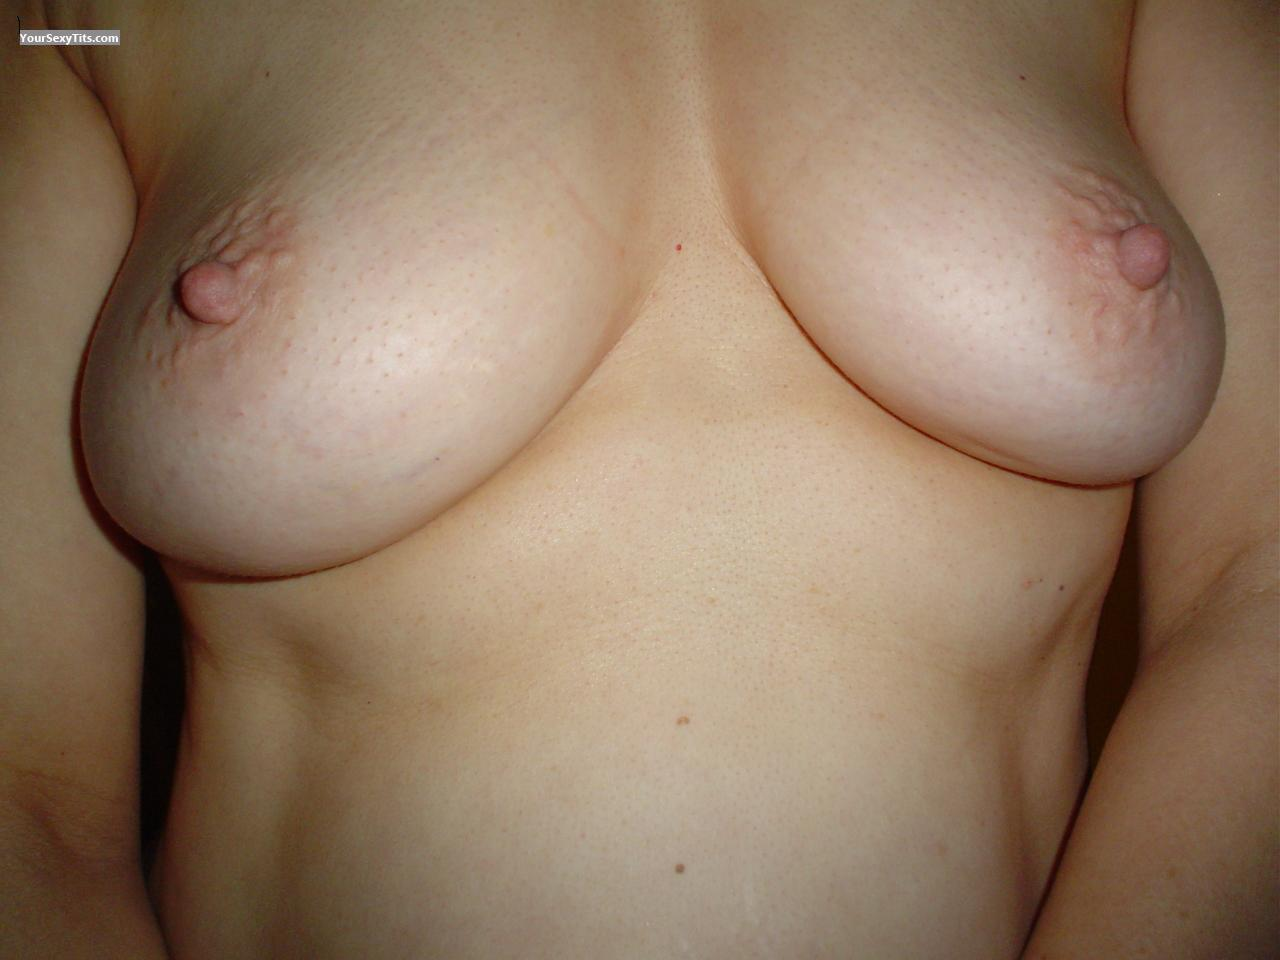 Tit Flash: Small Tits - Pam! from United States